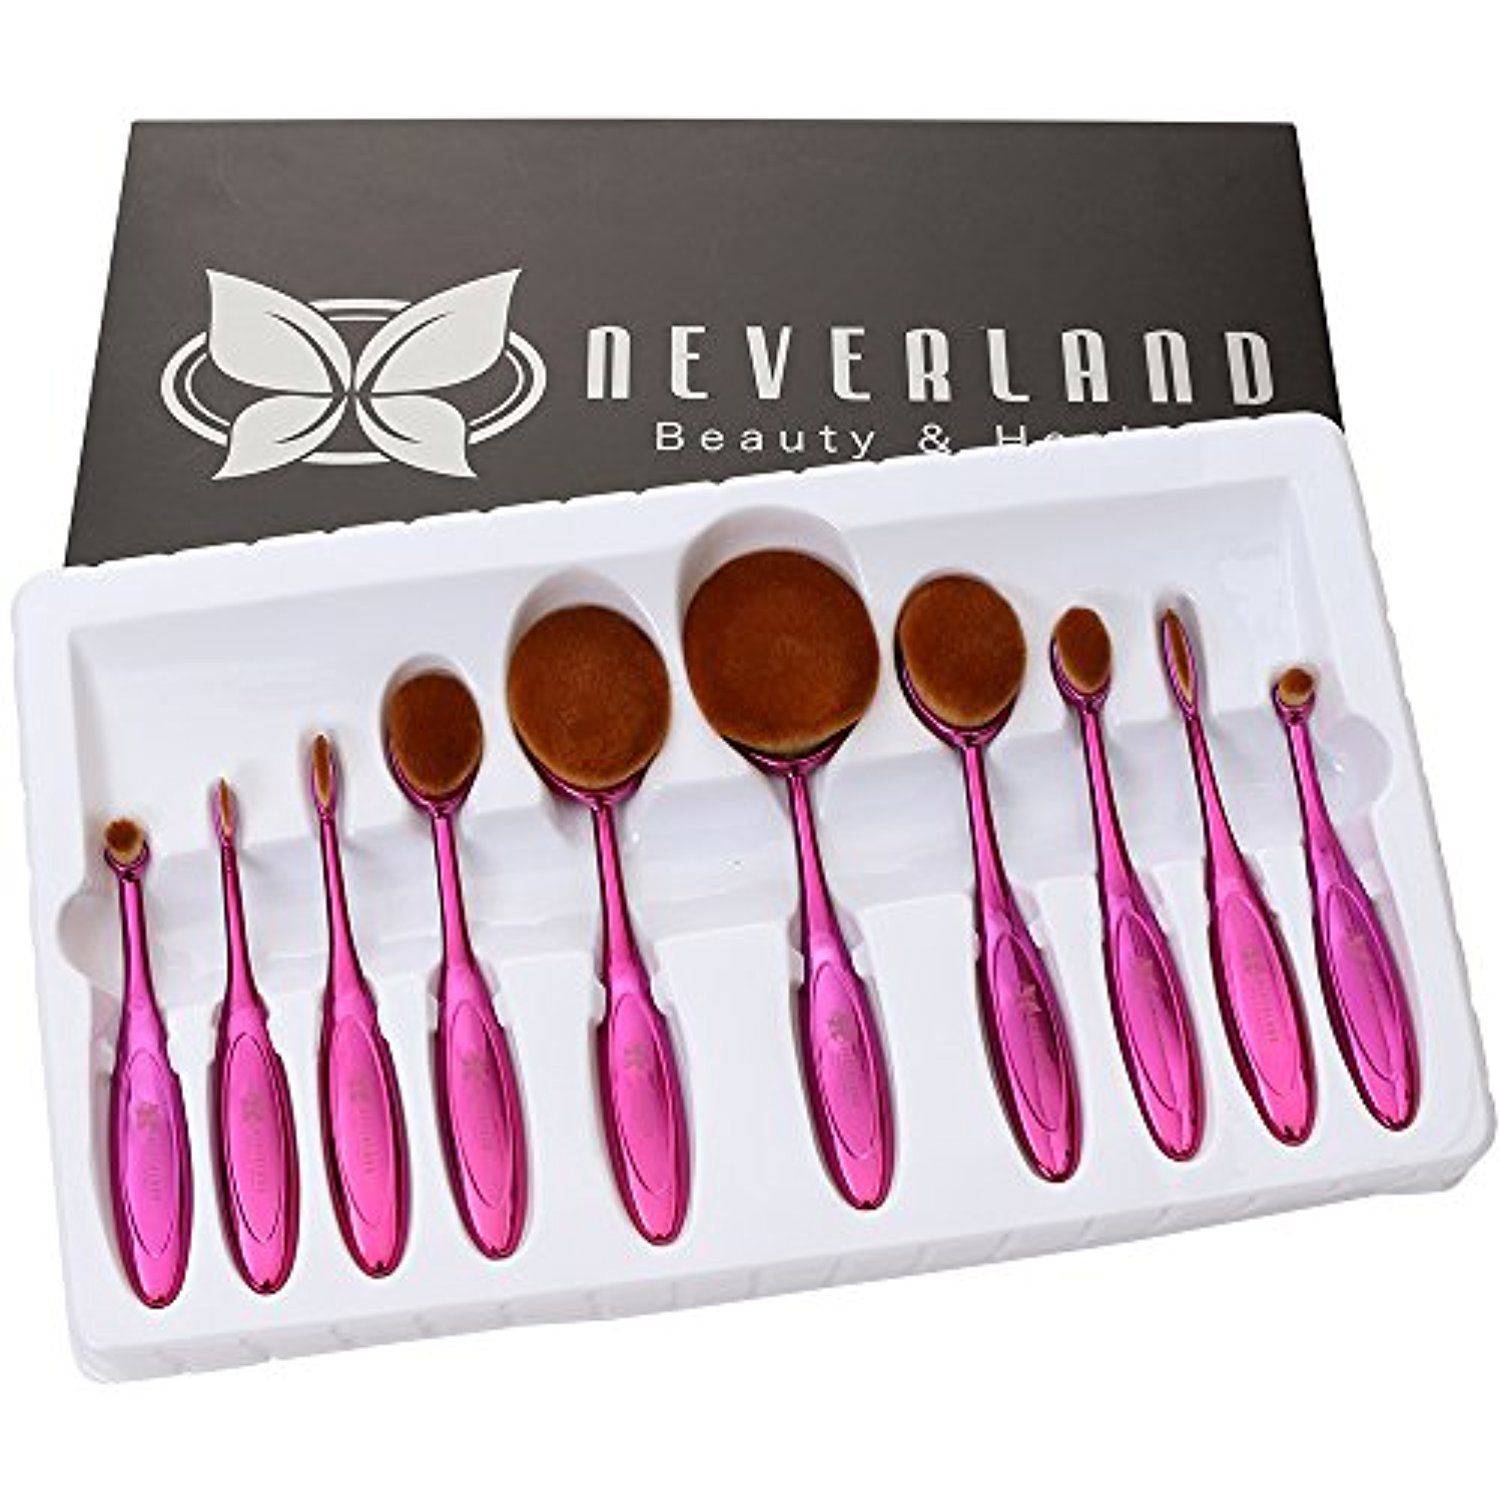 c230c6950459 Neverland Beauty 10pcs Hit Color Rose Red Toothbrush Elite Make-up ...